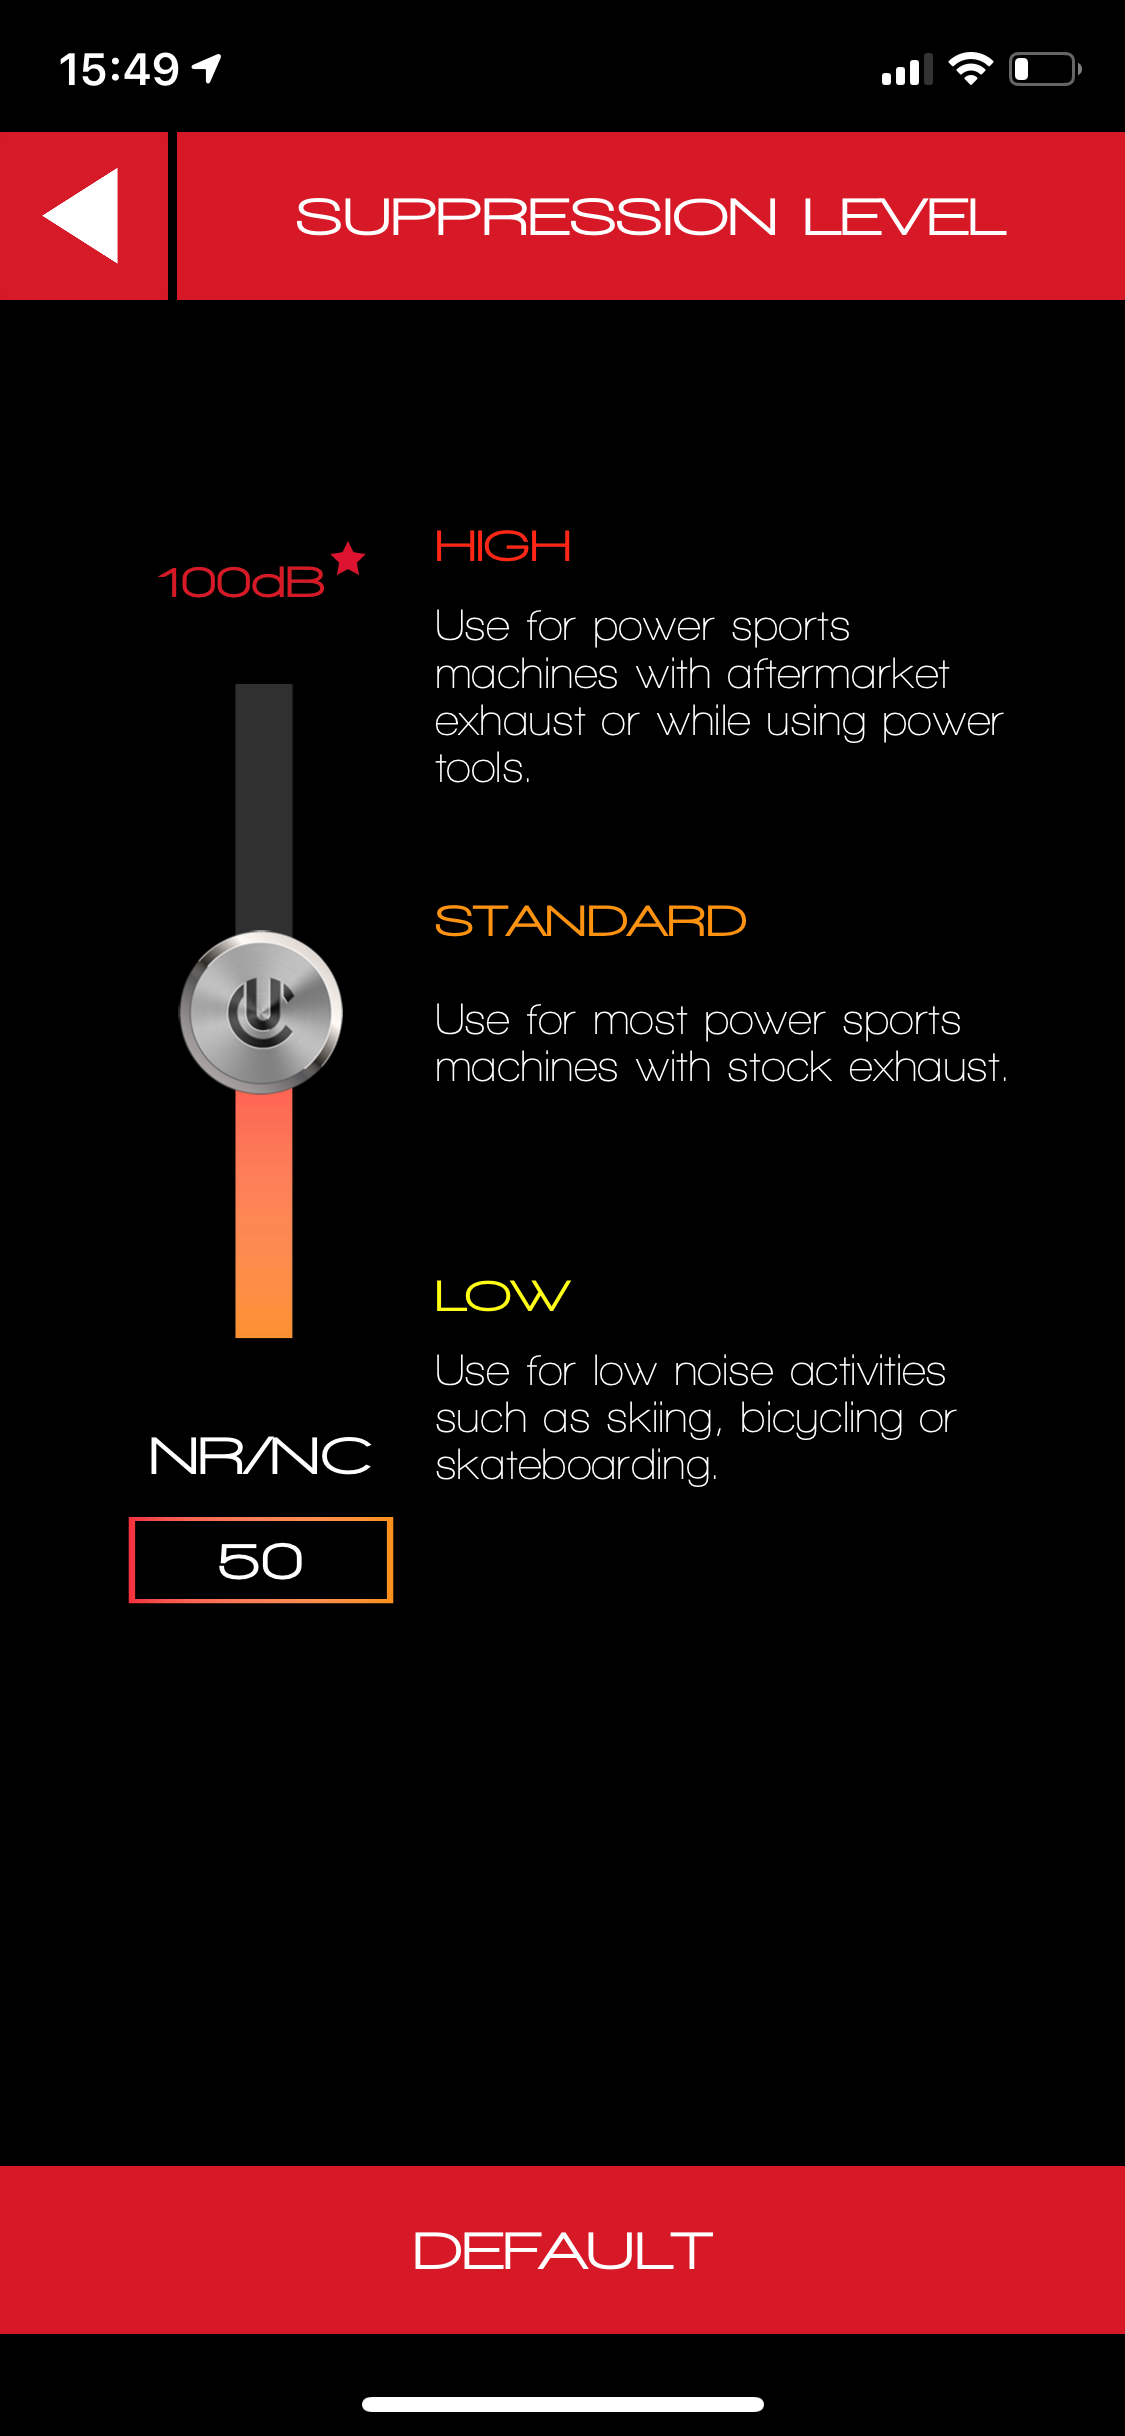 CLEARLink-Noise-Suppression-Level50